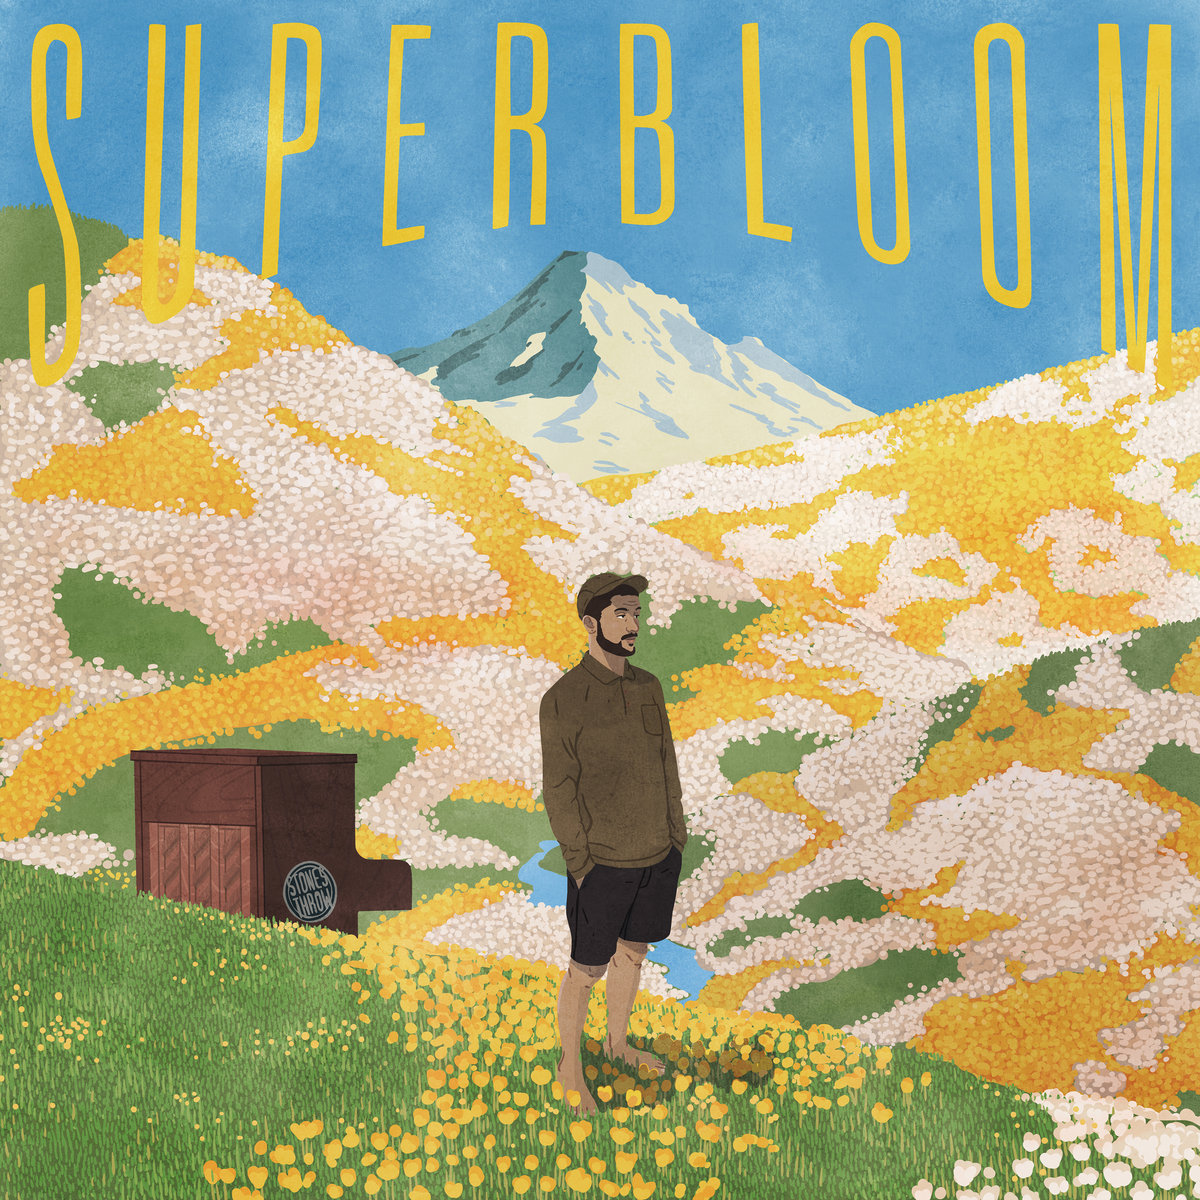 kiefer superbloom